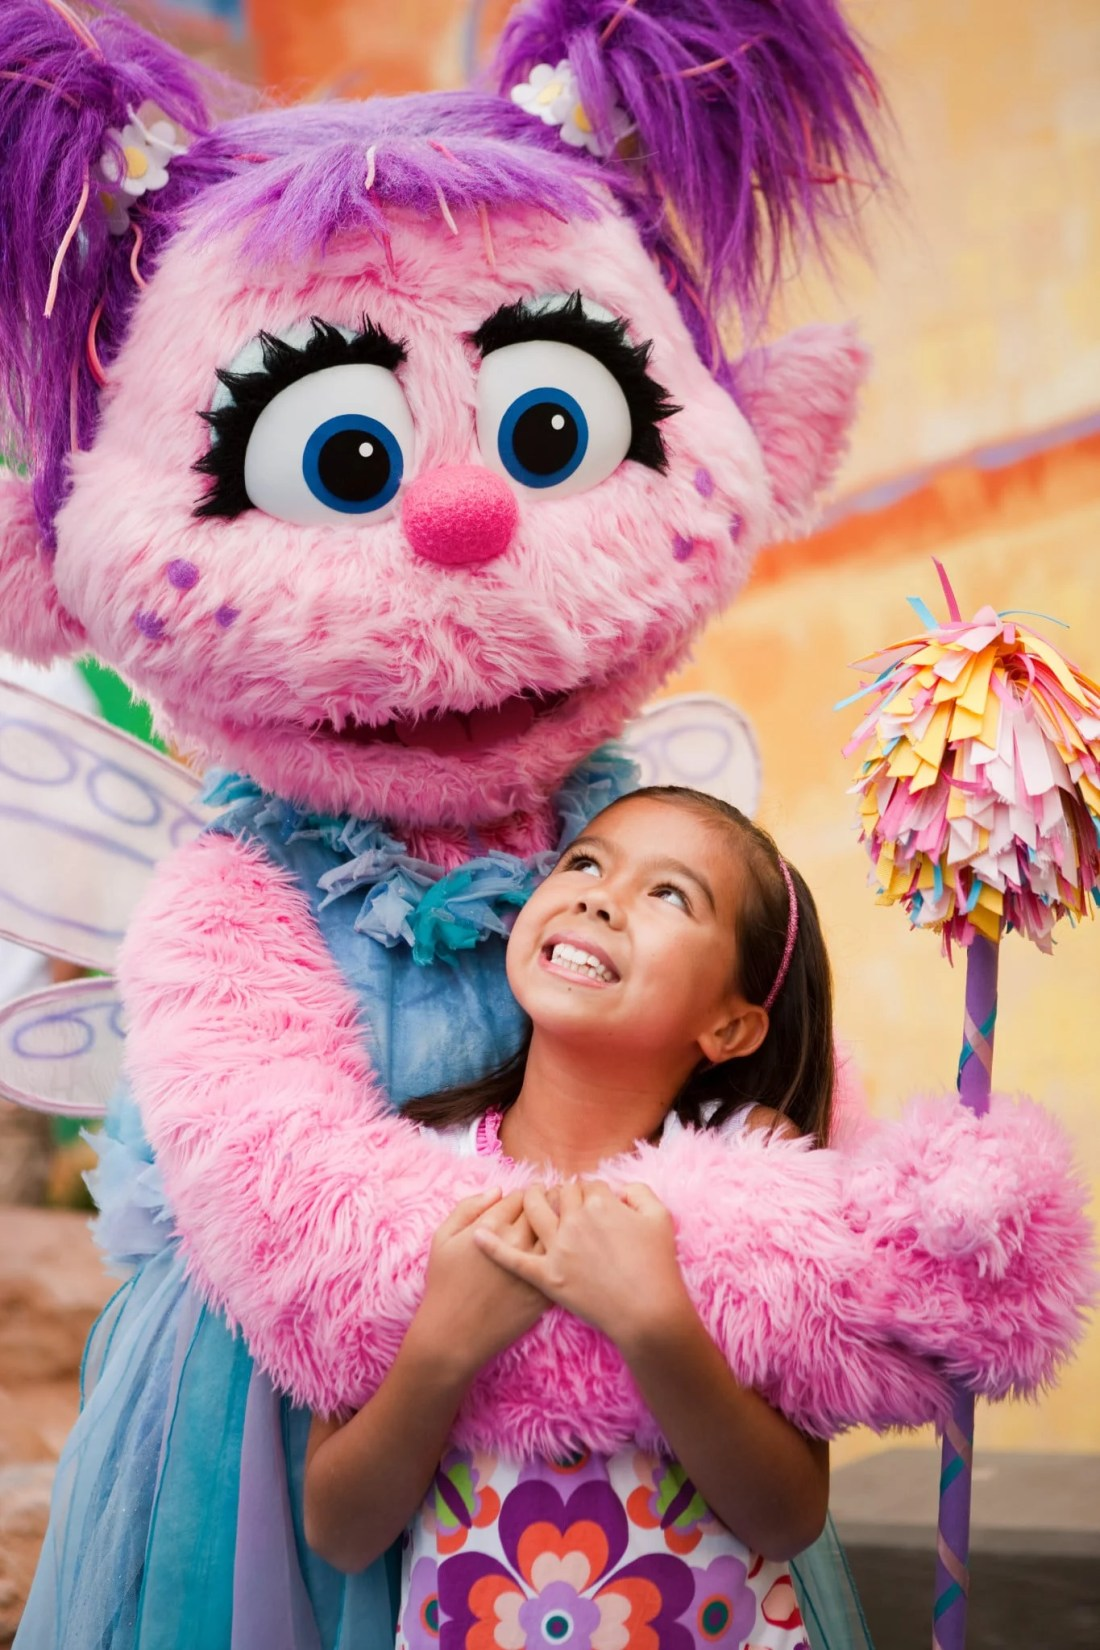 Every weekend from April 13 through May 20, join Elmo, Cookie Monster, Abby Cadabby and everyone's favorite furry friends for fun at Sesame Street® Kids' Weekends.